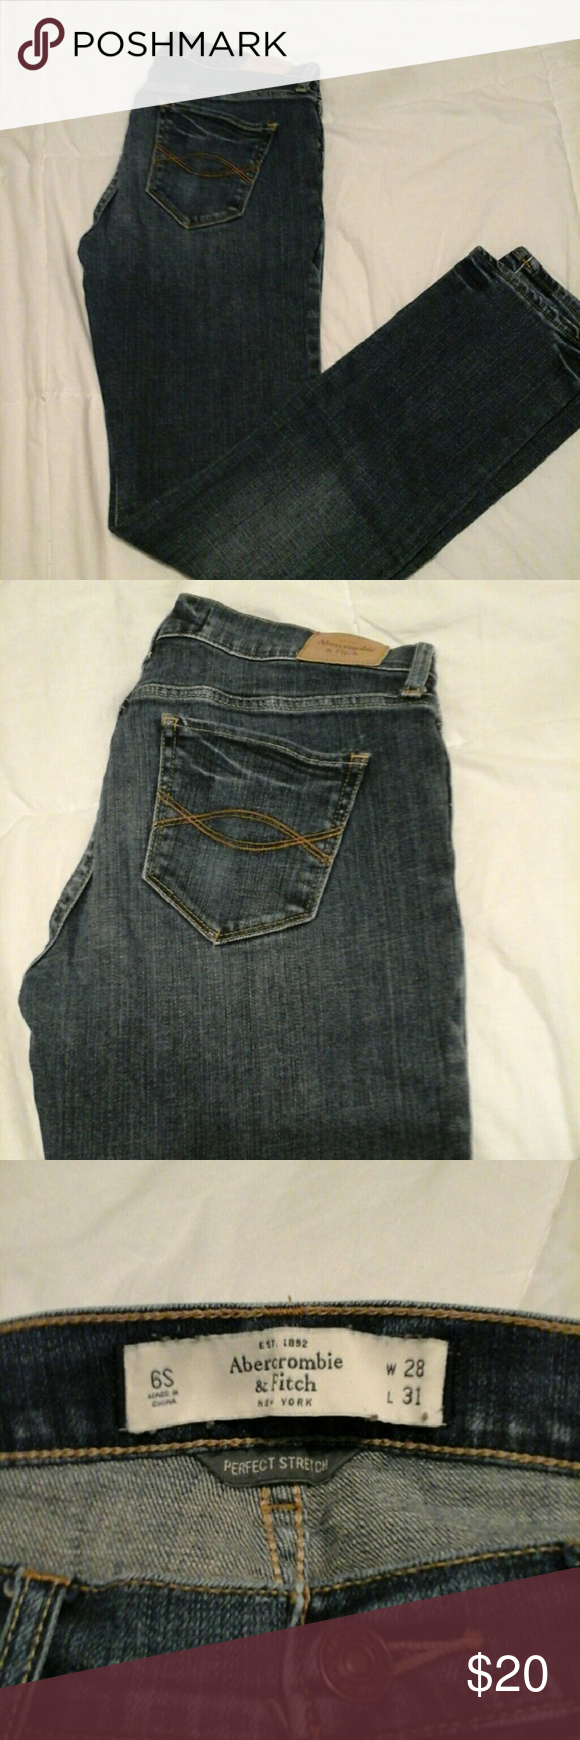 Abercrombie & Fitch 6s like new condition, medium wash. Abercrombie & Fitch Jeans Straight Leg